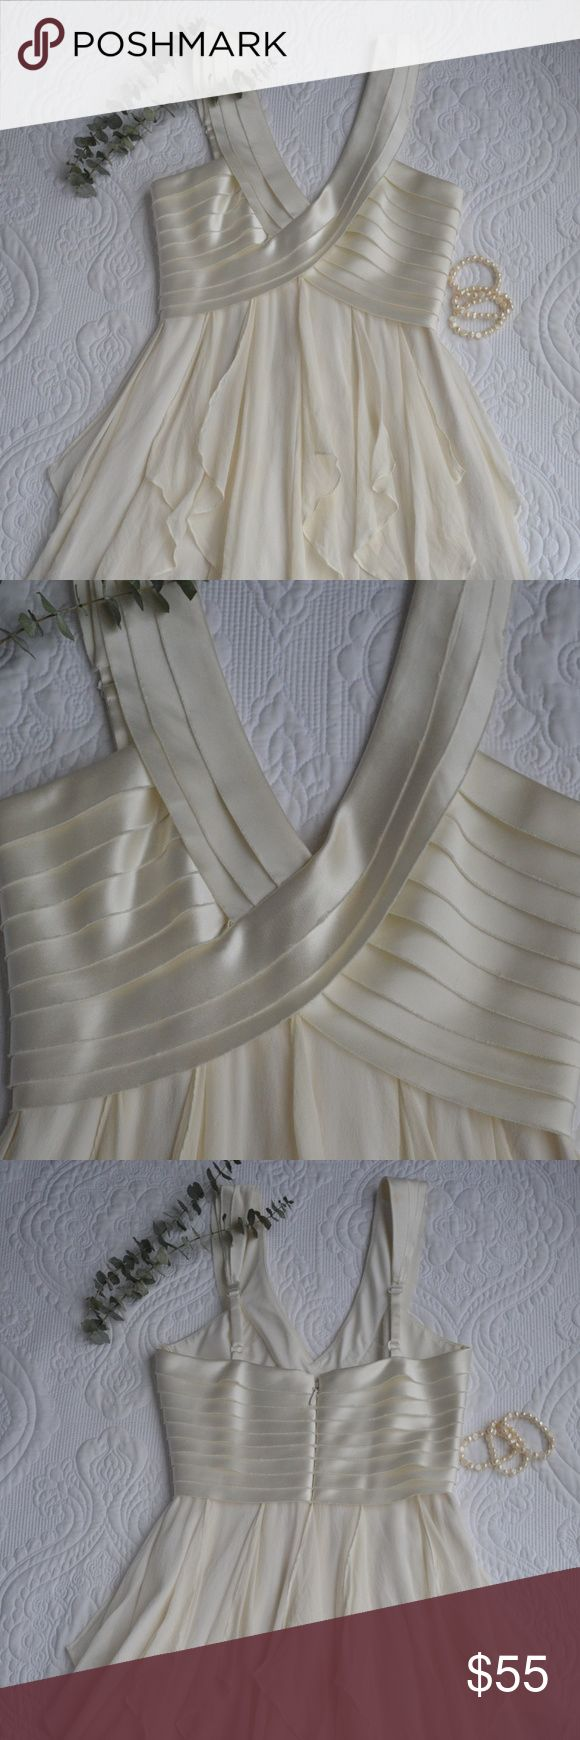 BCBGMAXAZRIA Shutter Pleat Dress Off white. Light airy dress with shutter-pleated bodice and tiered skirt layered with chiffon. Satin bodice has unfinished edges look. Silk layer beneath chiffon, peaks out from beneath the chiffon layers see picture 5. Picture 8  is for fit reference only. Smoke free home. 10% bundle discount. Offers considered. Please ask questions!! BCBGMaxAzria Dresses Mini